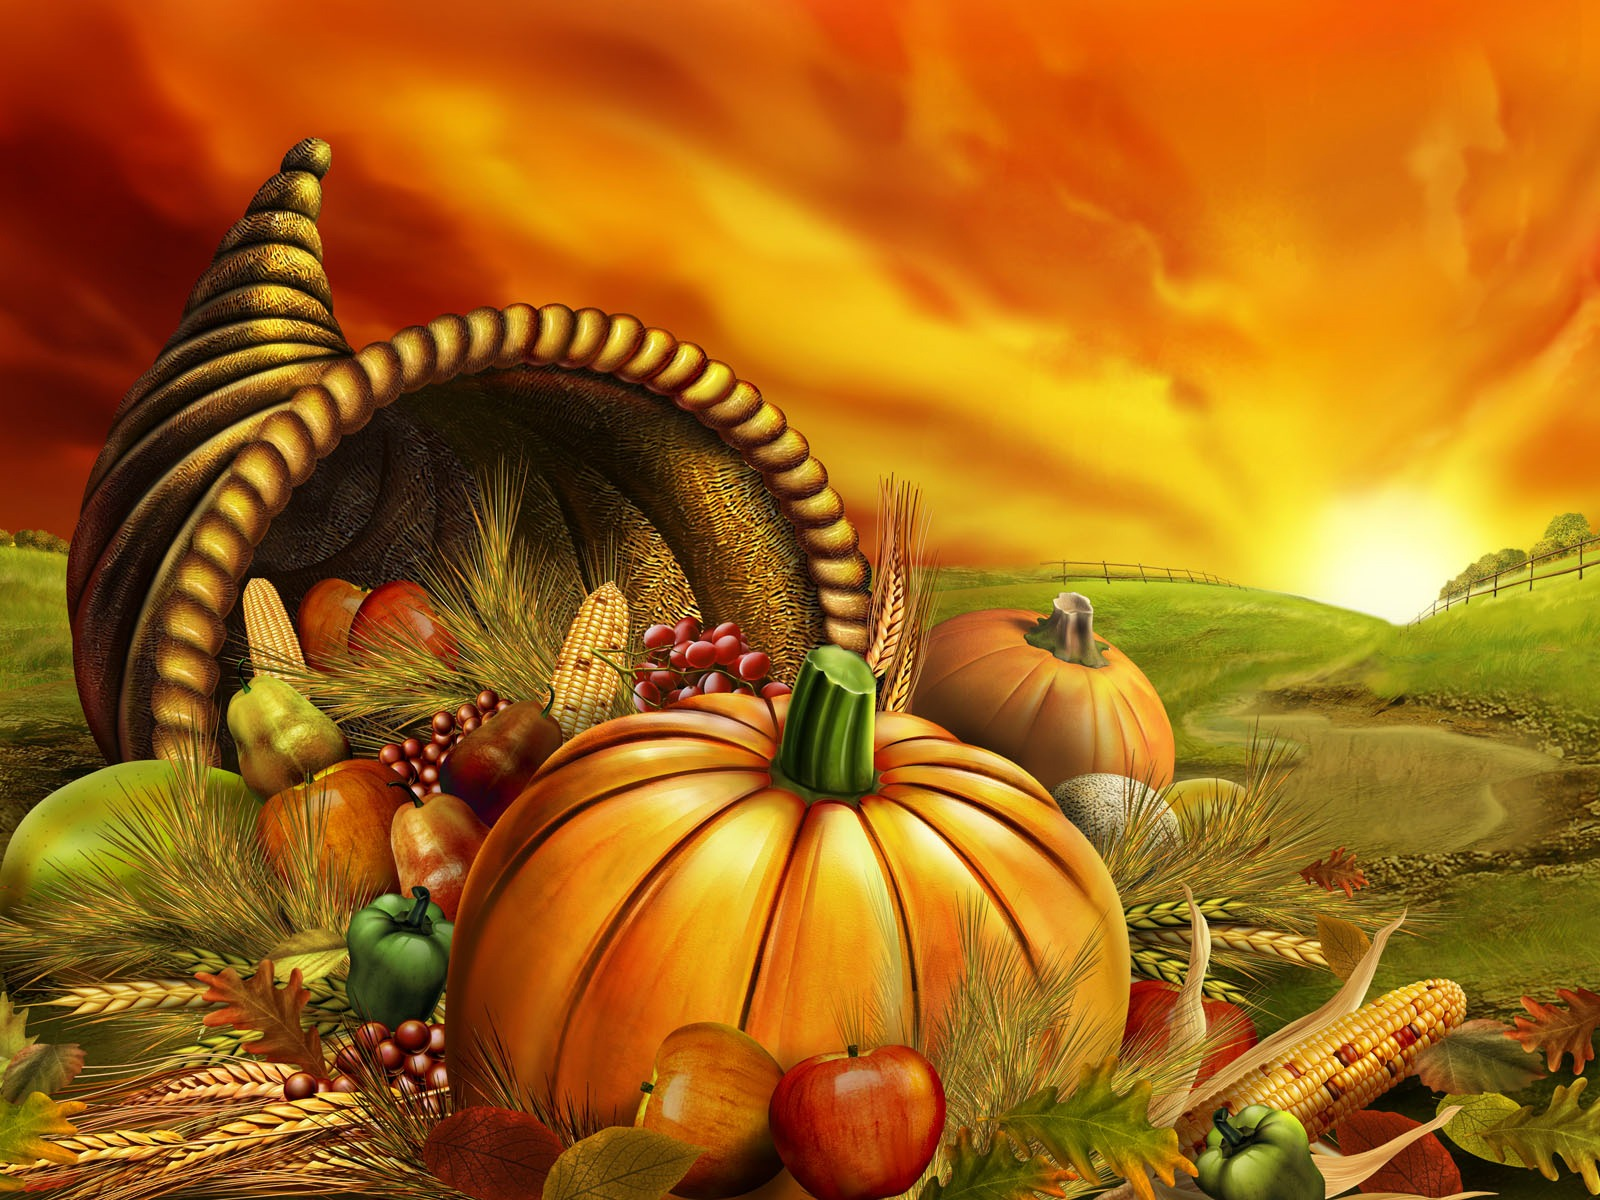 Fall Desktop Wallpaper With Pumpkins Thanksgiving Party Ideas 7thriv